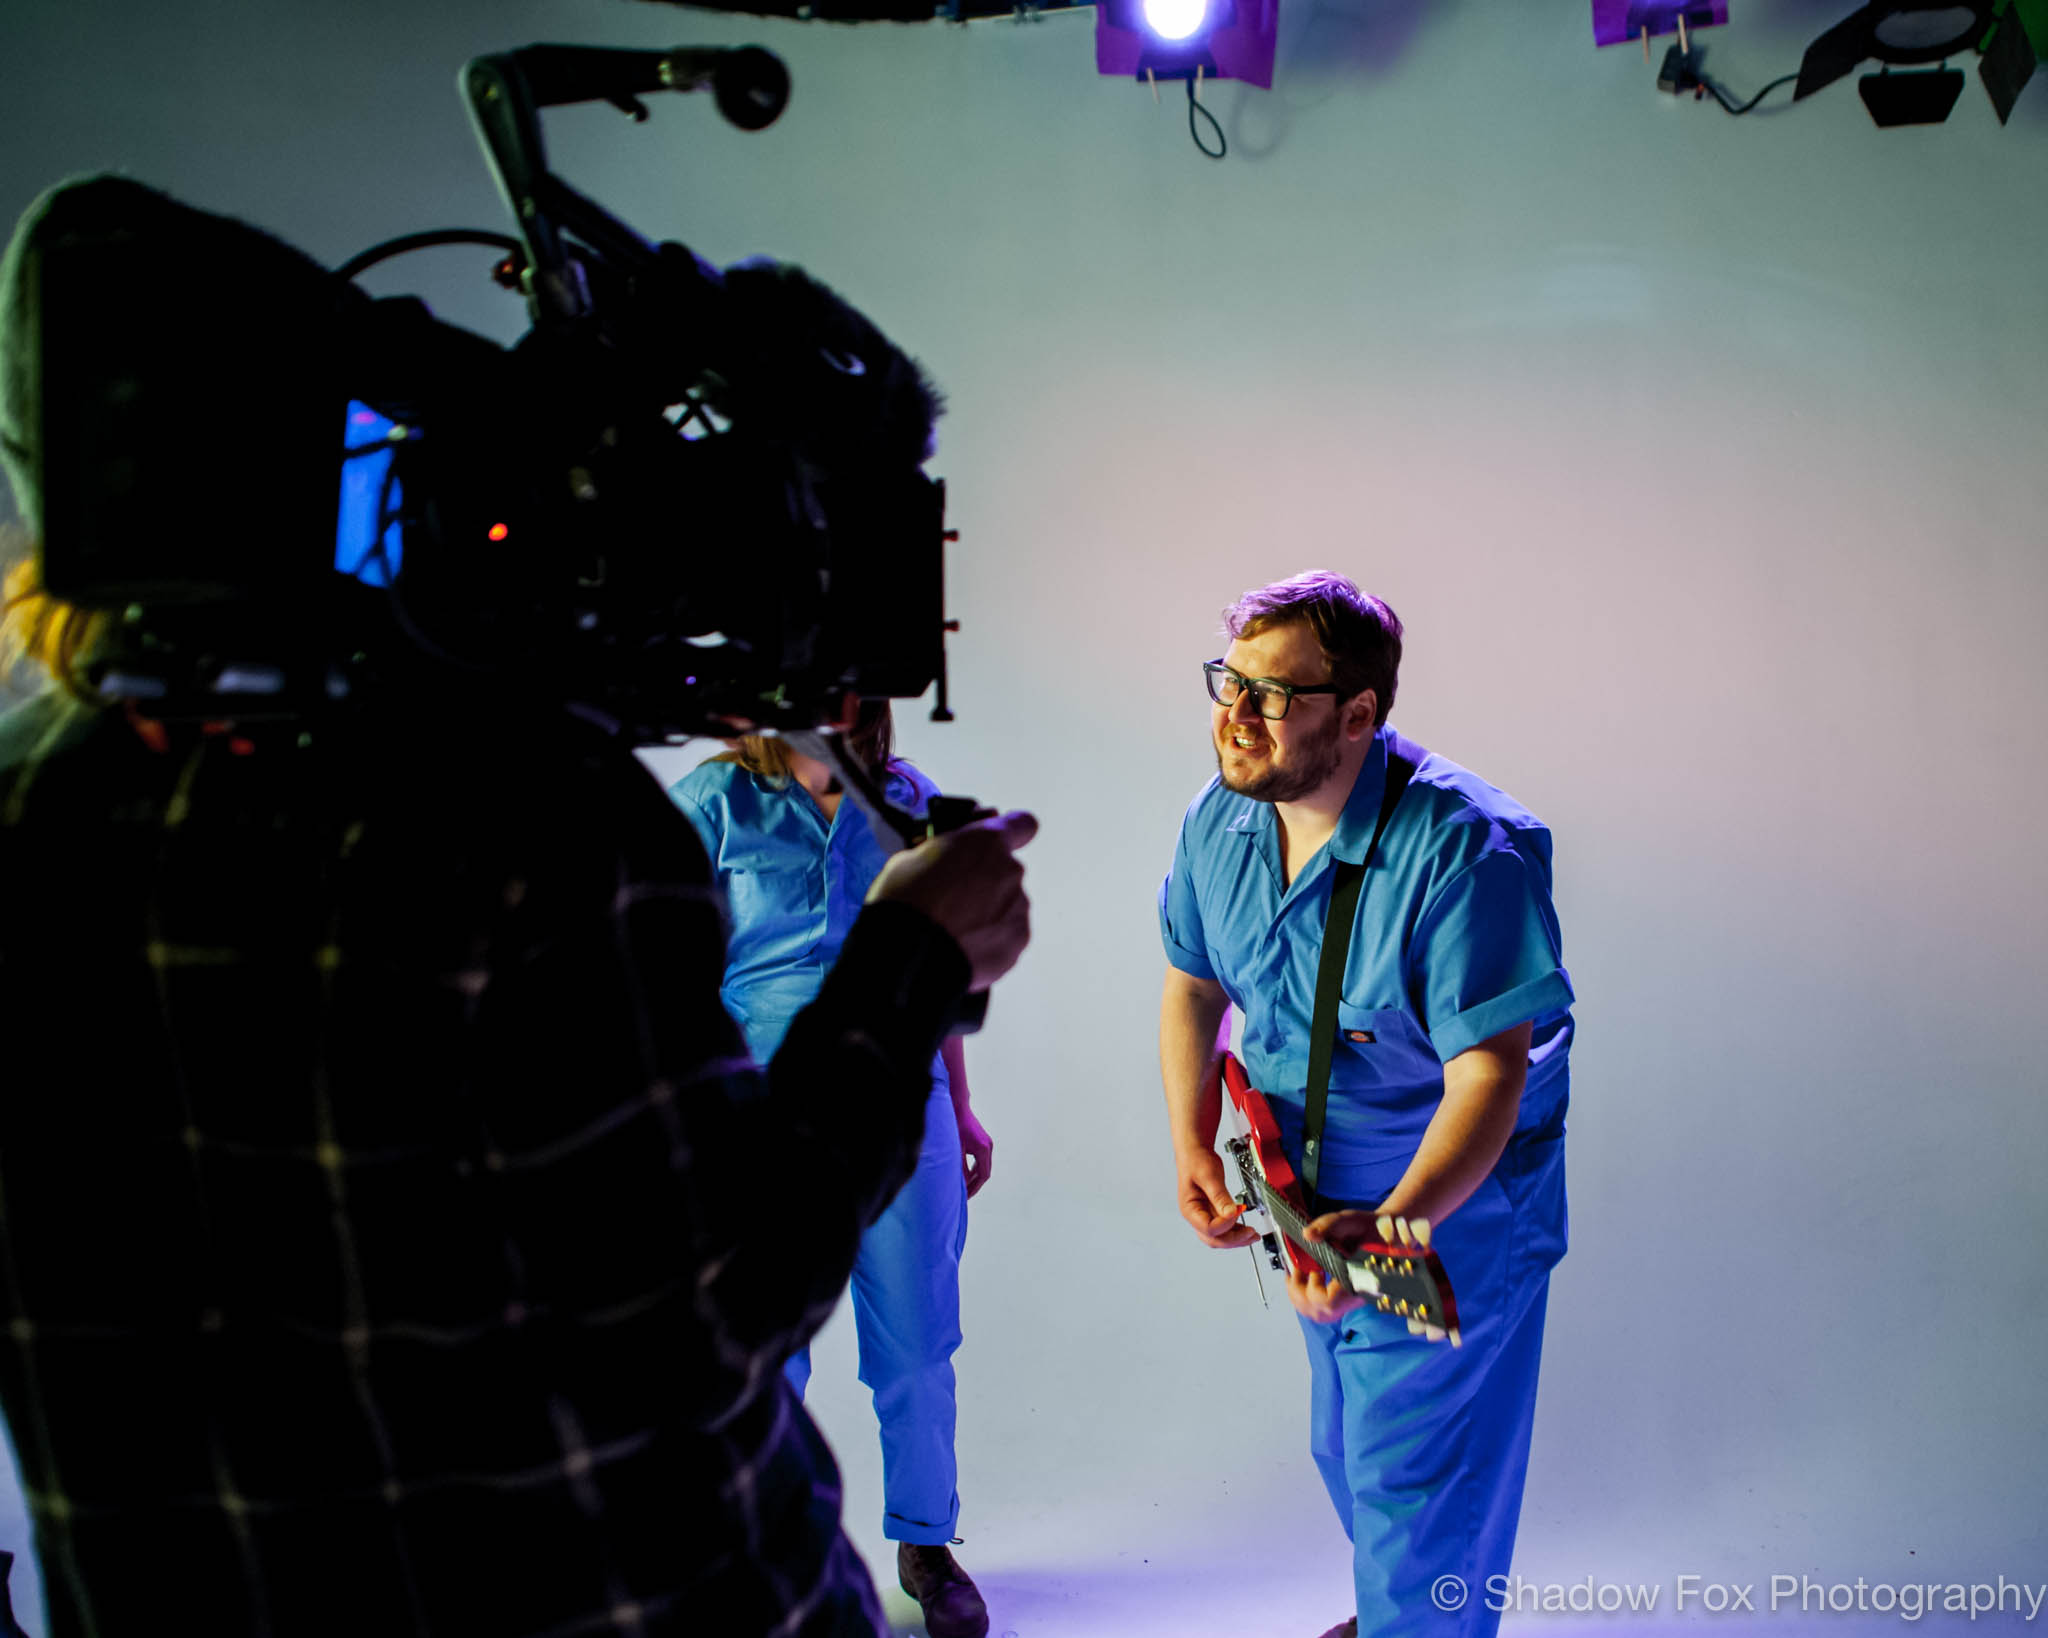 Crystal City Three Dimensionality music video shoot in Des Moines, Iowa